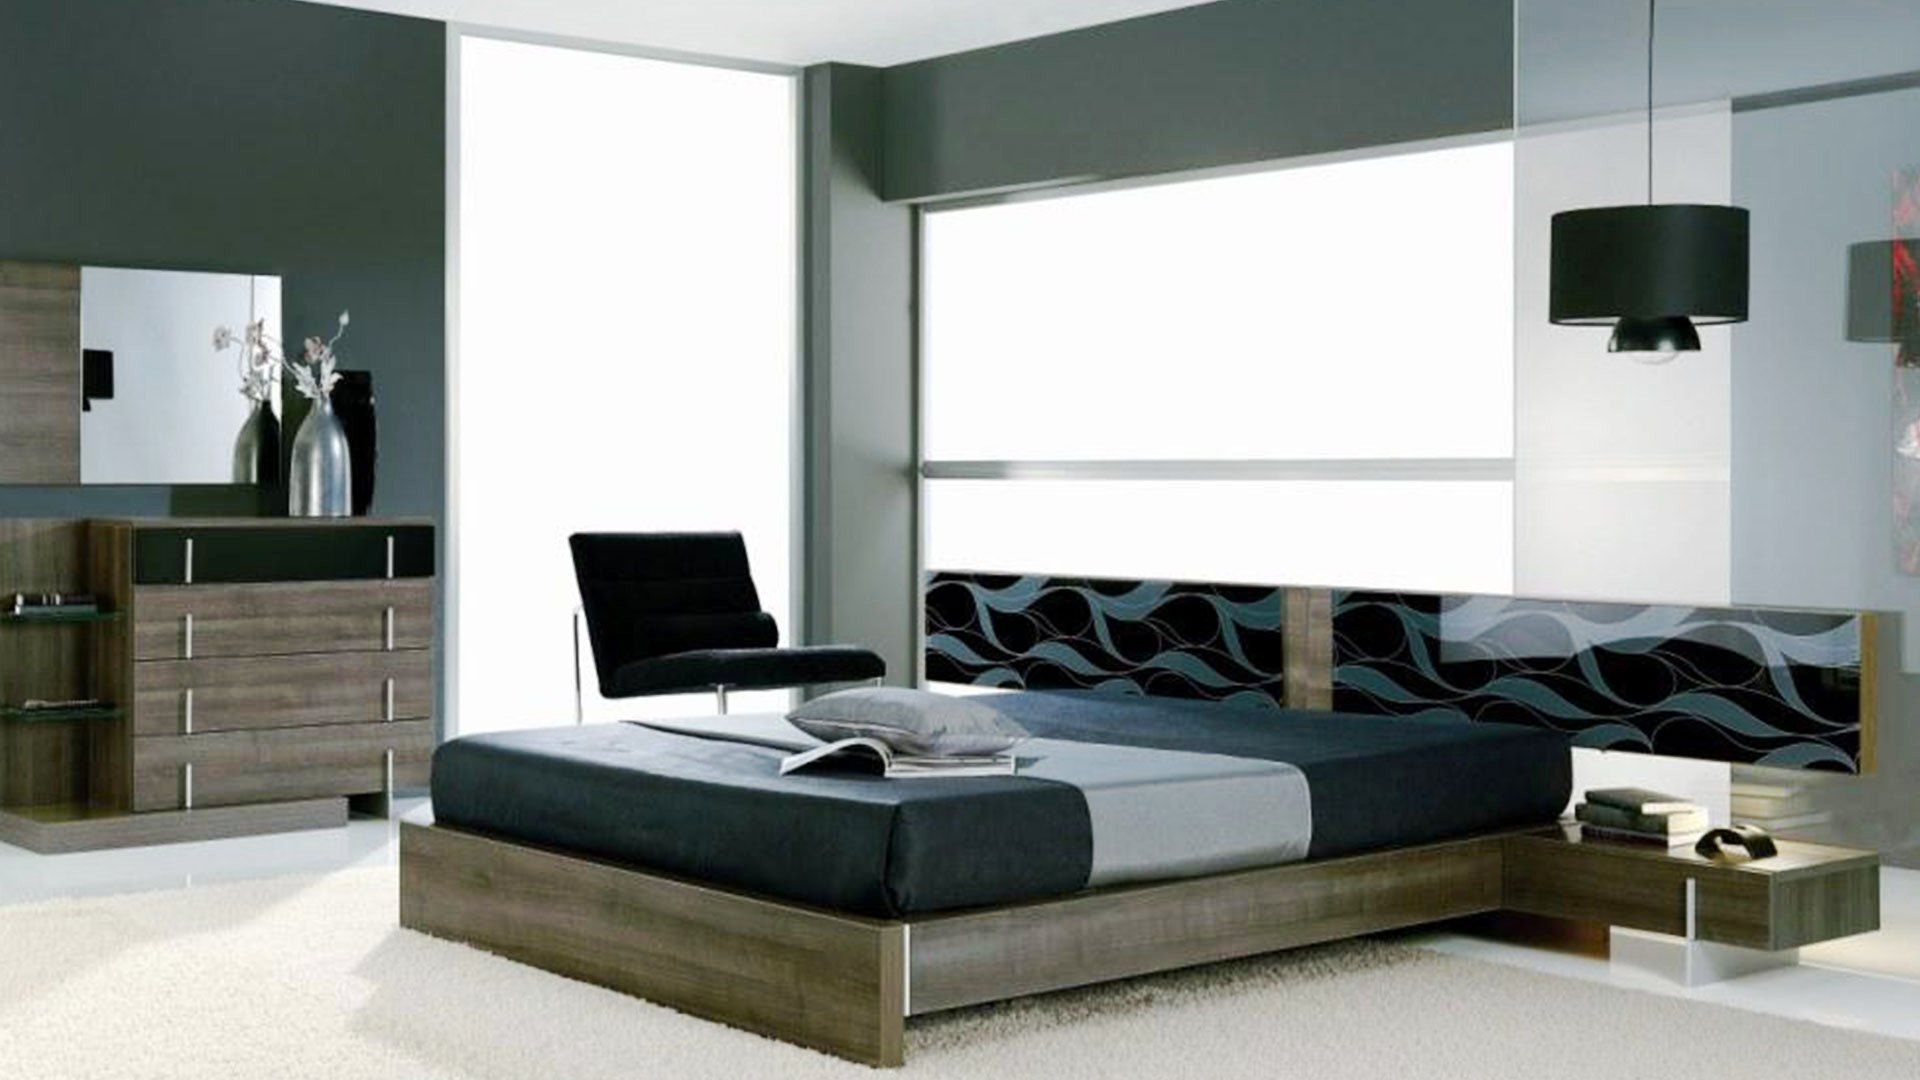 Mid century modern bedroom set design ideas youull love mid